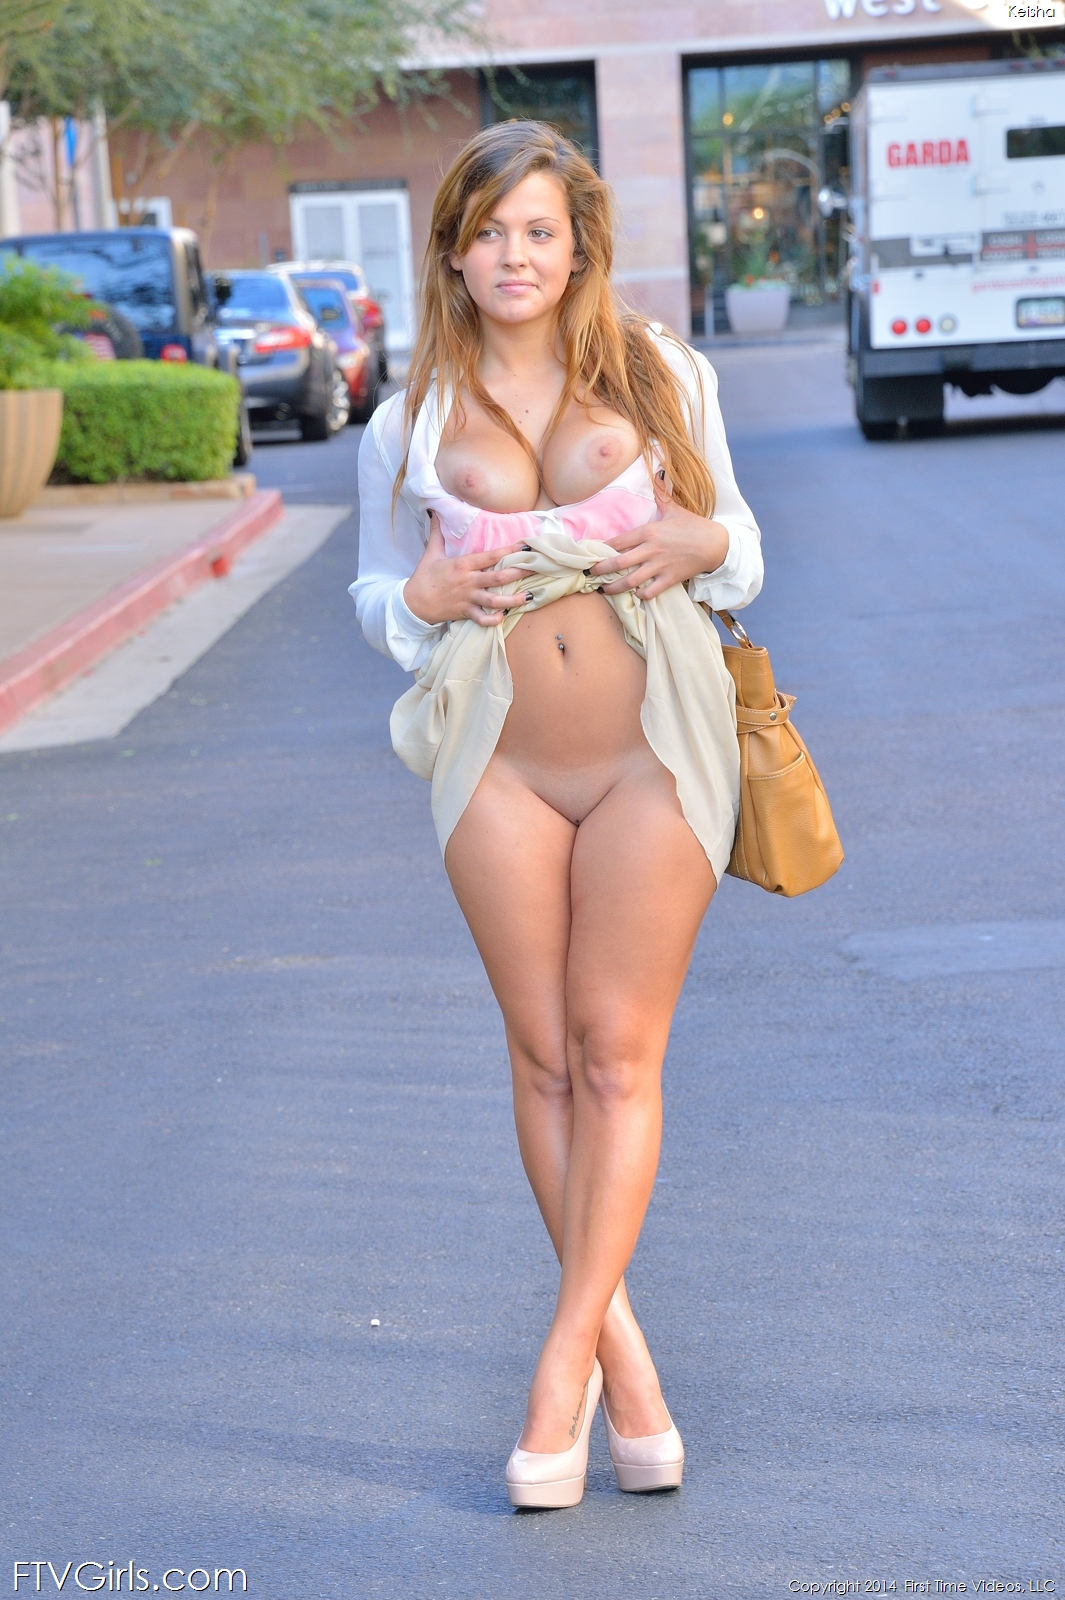 Girls Getting Naked Public